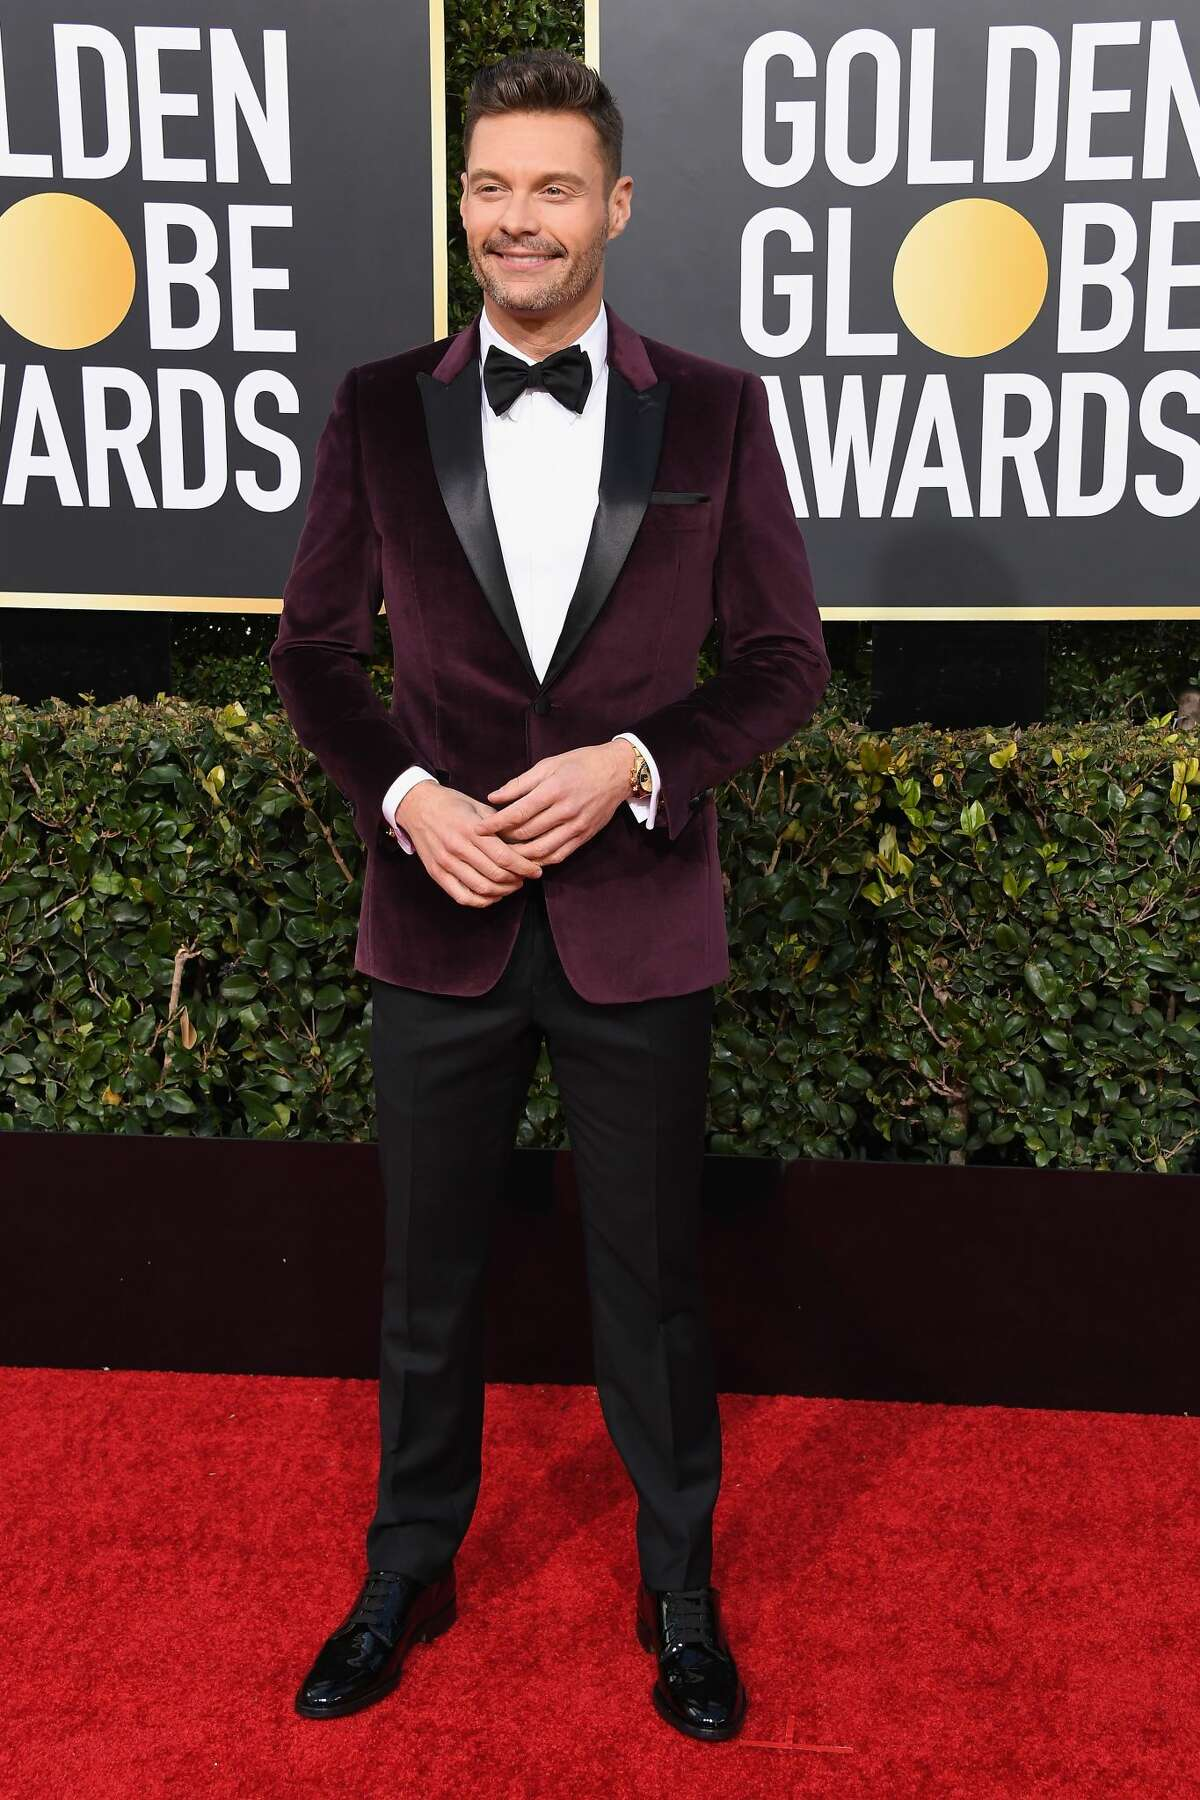 Ryan Seacrest attends the 76th Annual Golden Globe Awards at The Beverly Hilton Hotel on January 6, 2019 in Beverly Hills, California. (Photo by Steve Granitz/WireImage)